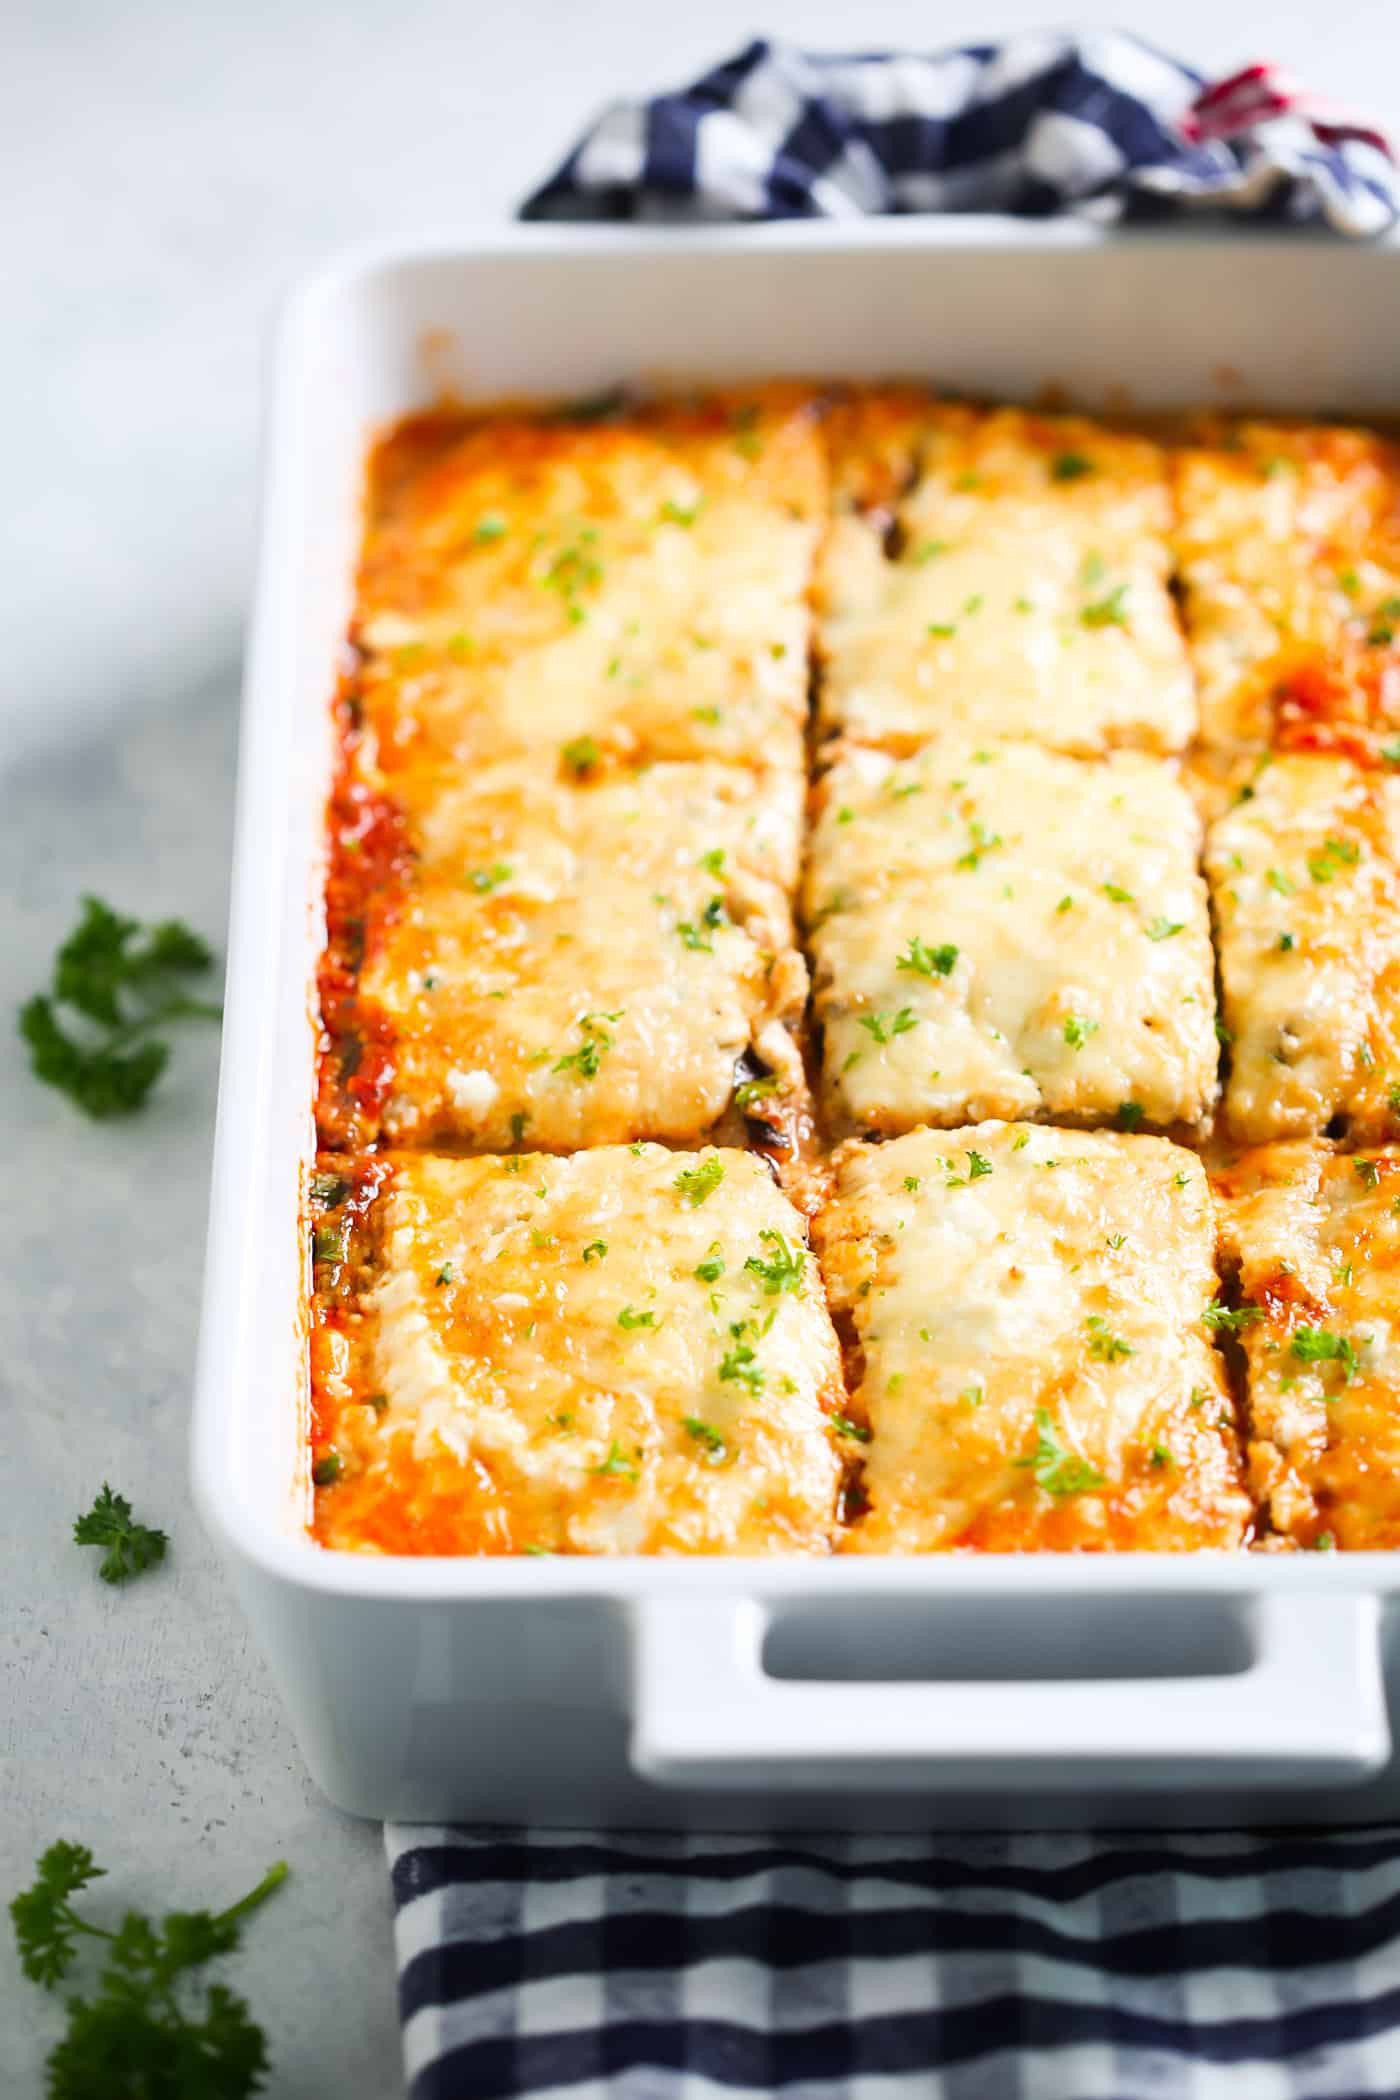 Low Carb Eggplant Lasagna  eggplant lasagna low carb ve arian